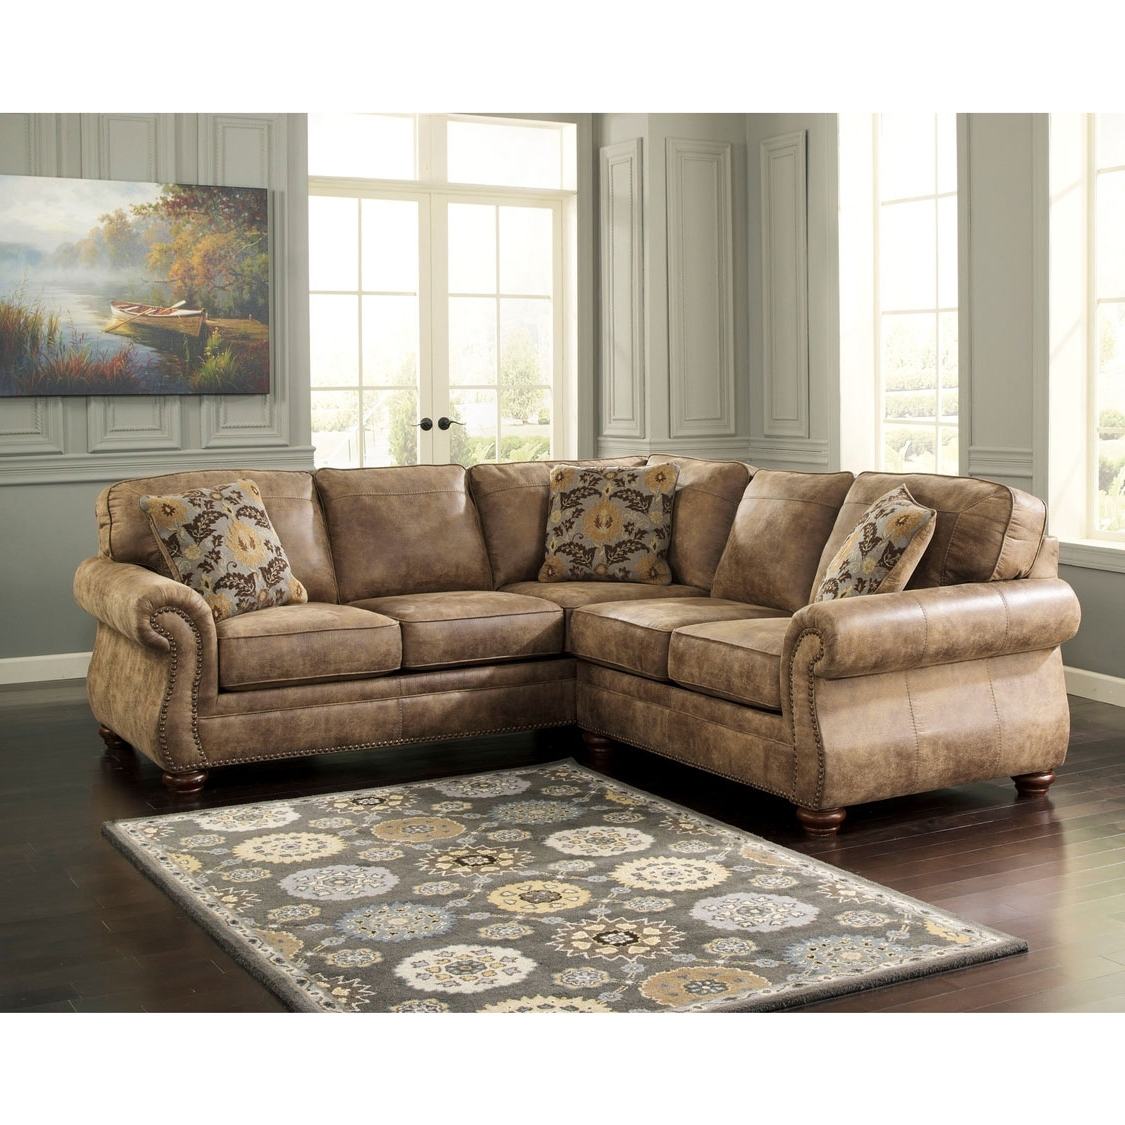 2018 Tucson Sectional Sofas Throughout Sectional Sofa (View 2 of 20)